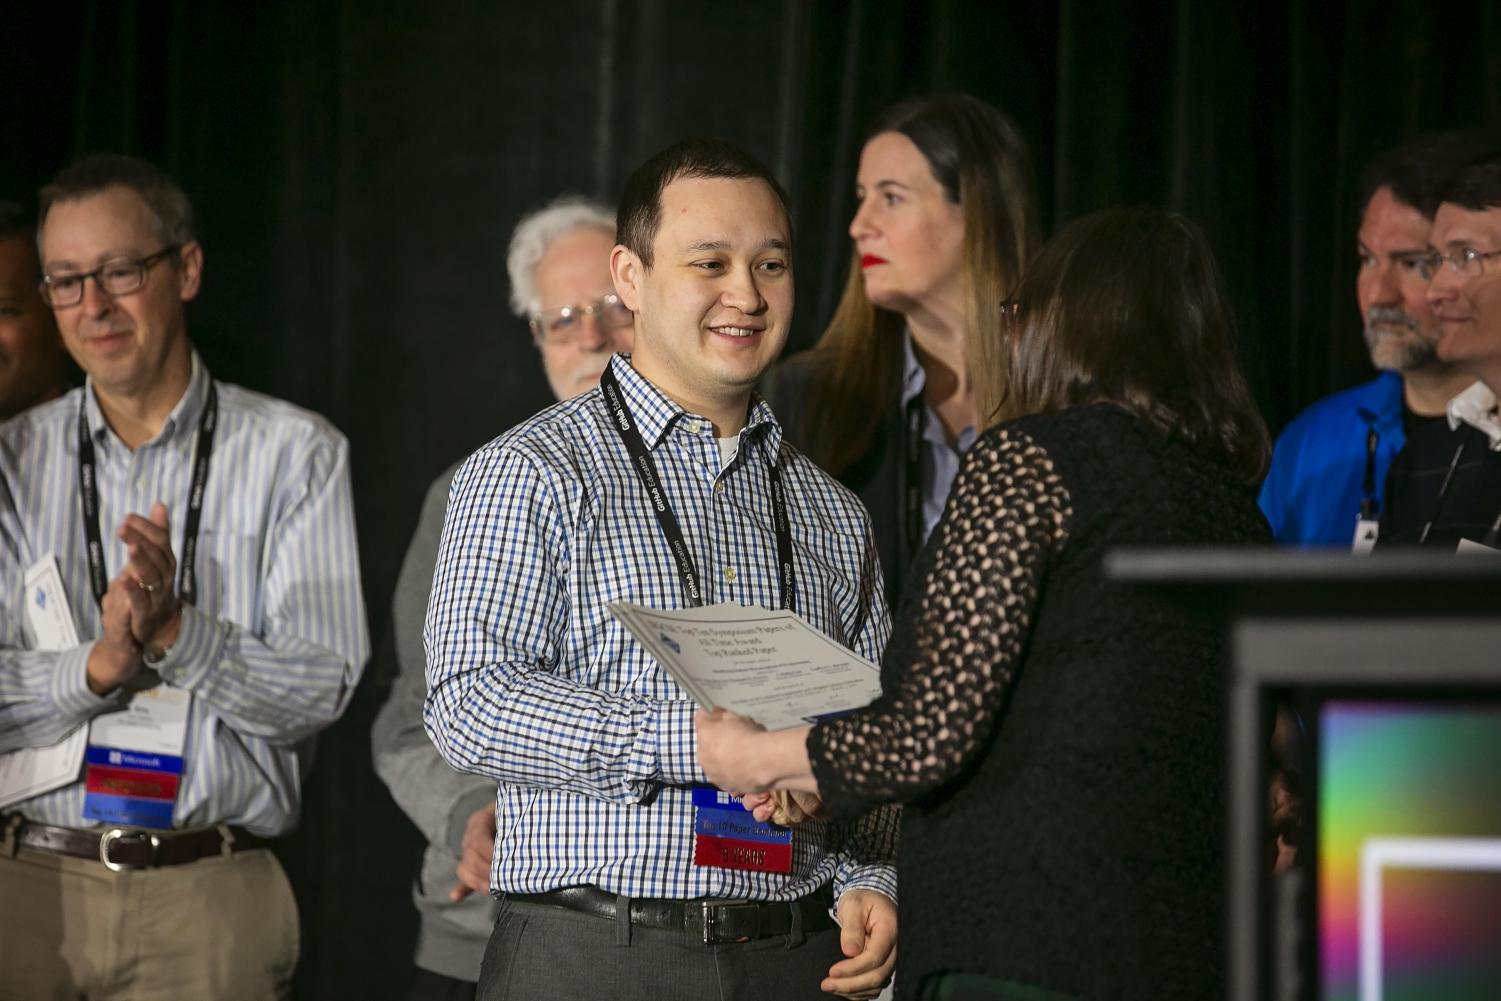 Professor Herman receives an award from the Association for Computing Machinery's Special Interest group at the Technical Symposium on Computer Science Education.